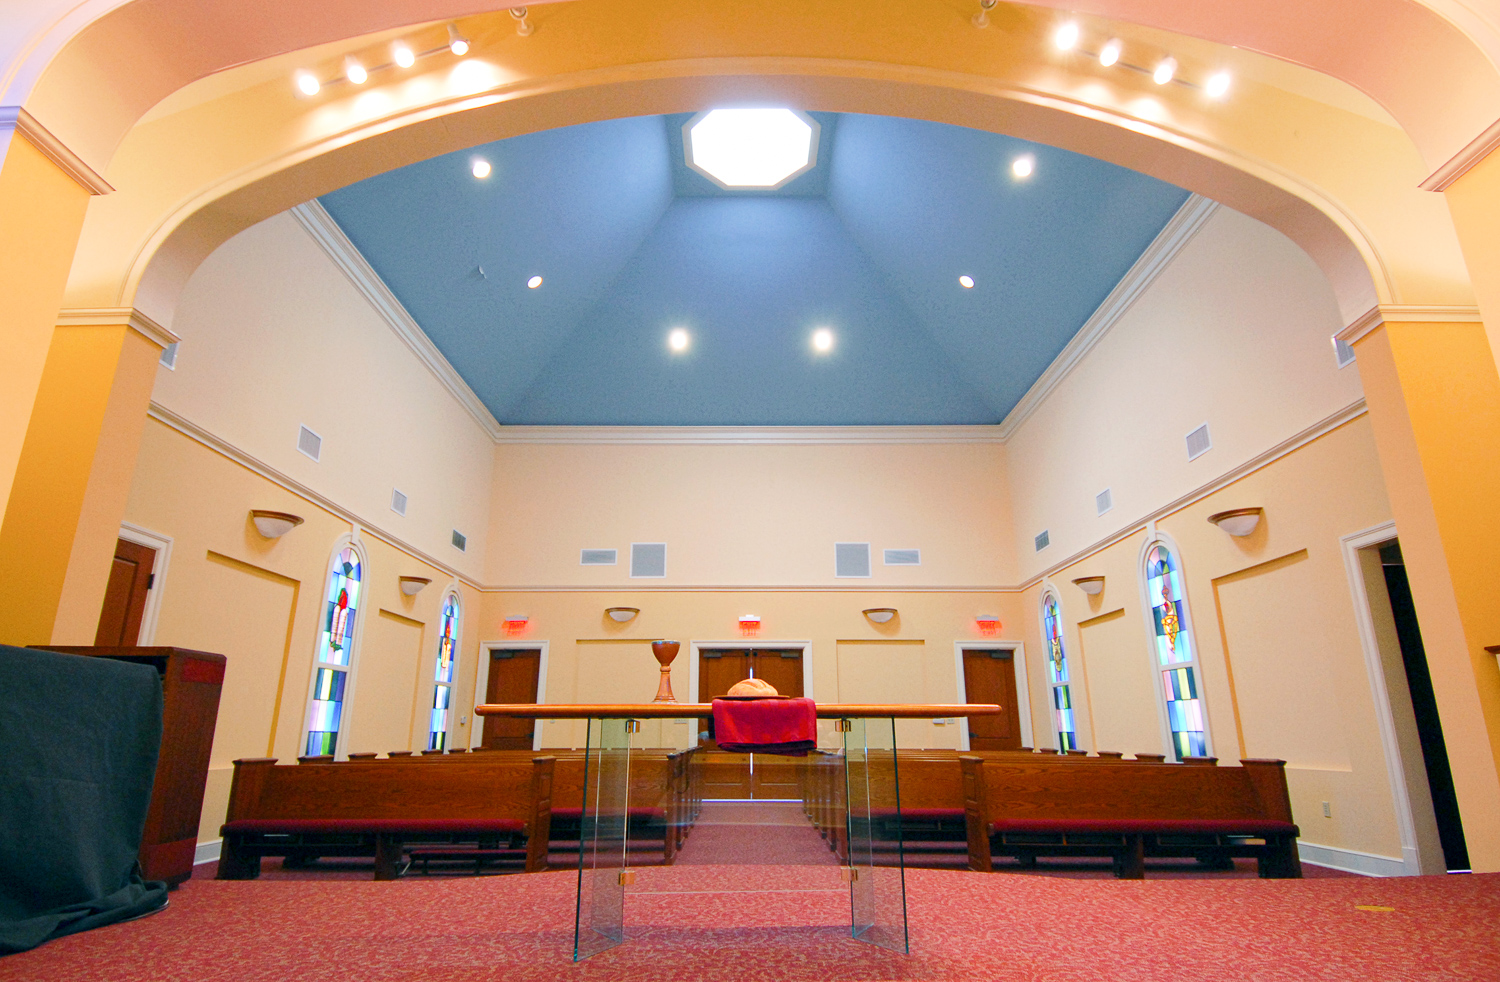 Kingsway Church in Memphis, Tennessee -- Church and Worship Design Construction-4.jpg